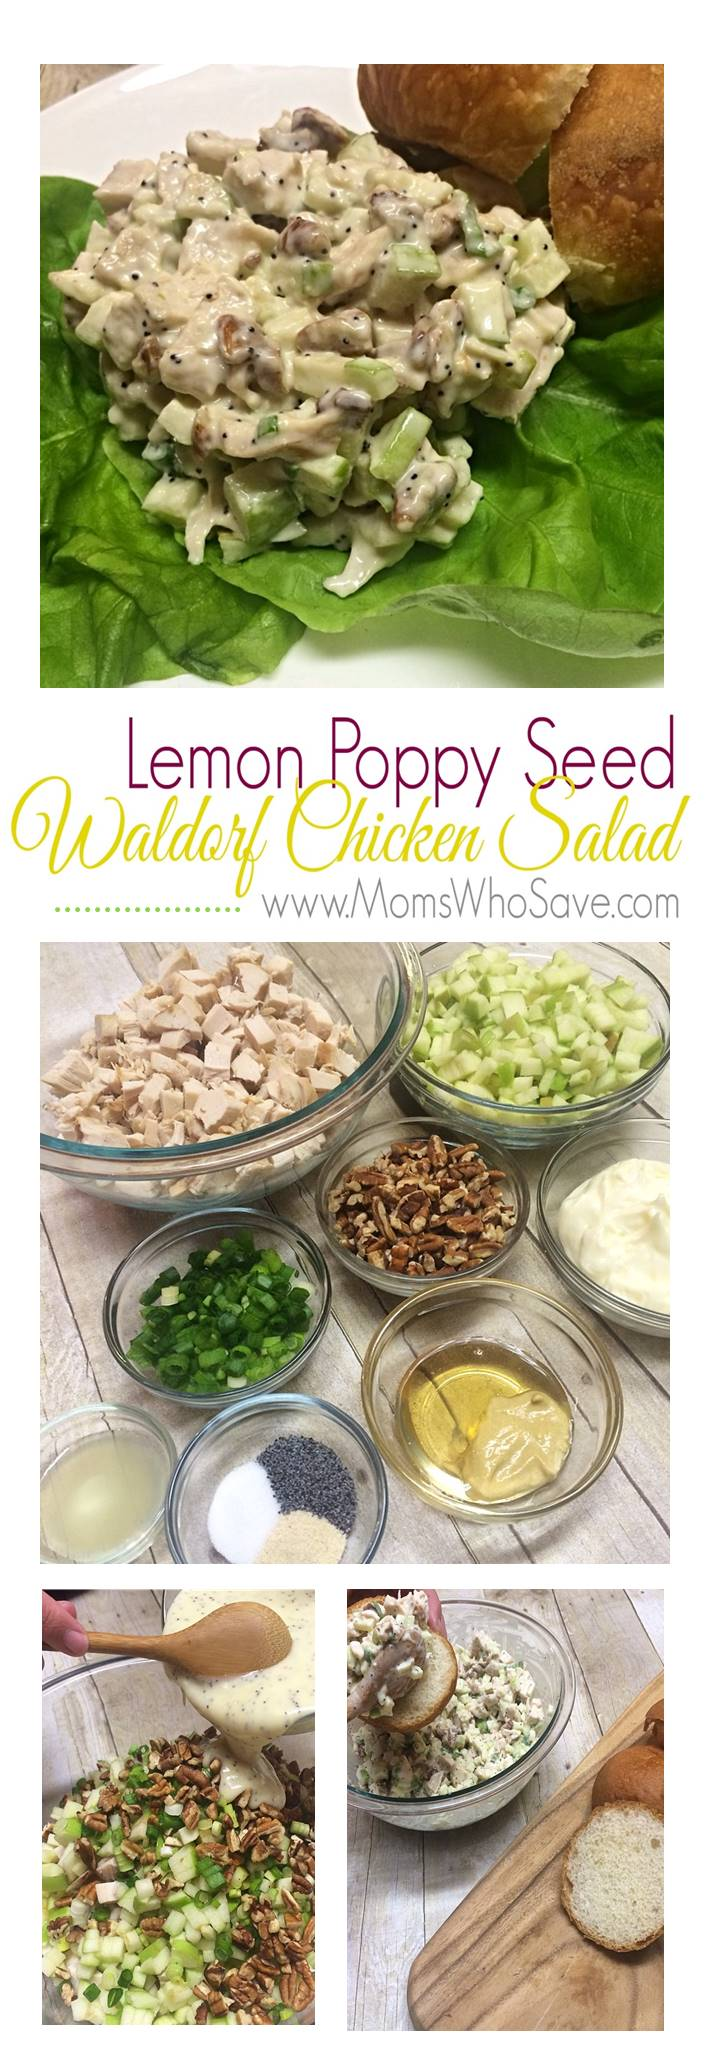 Lemon Poppy Seed Waldorf Chicken Salad